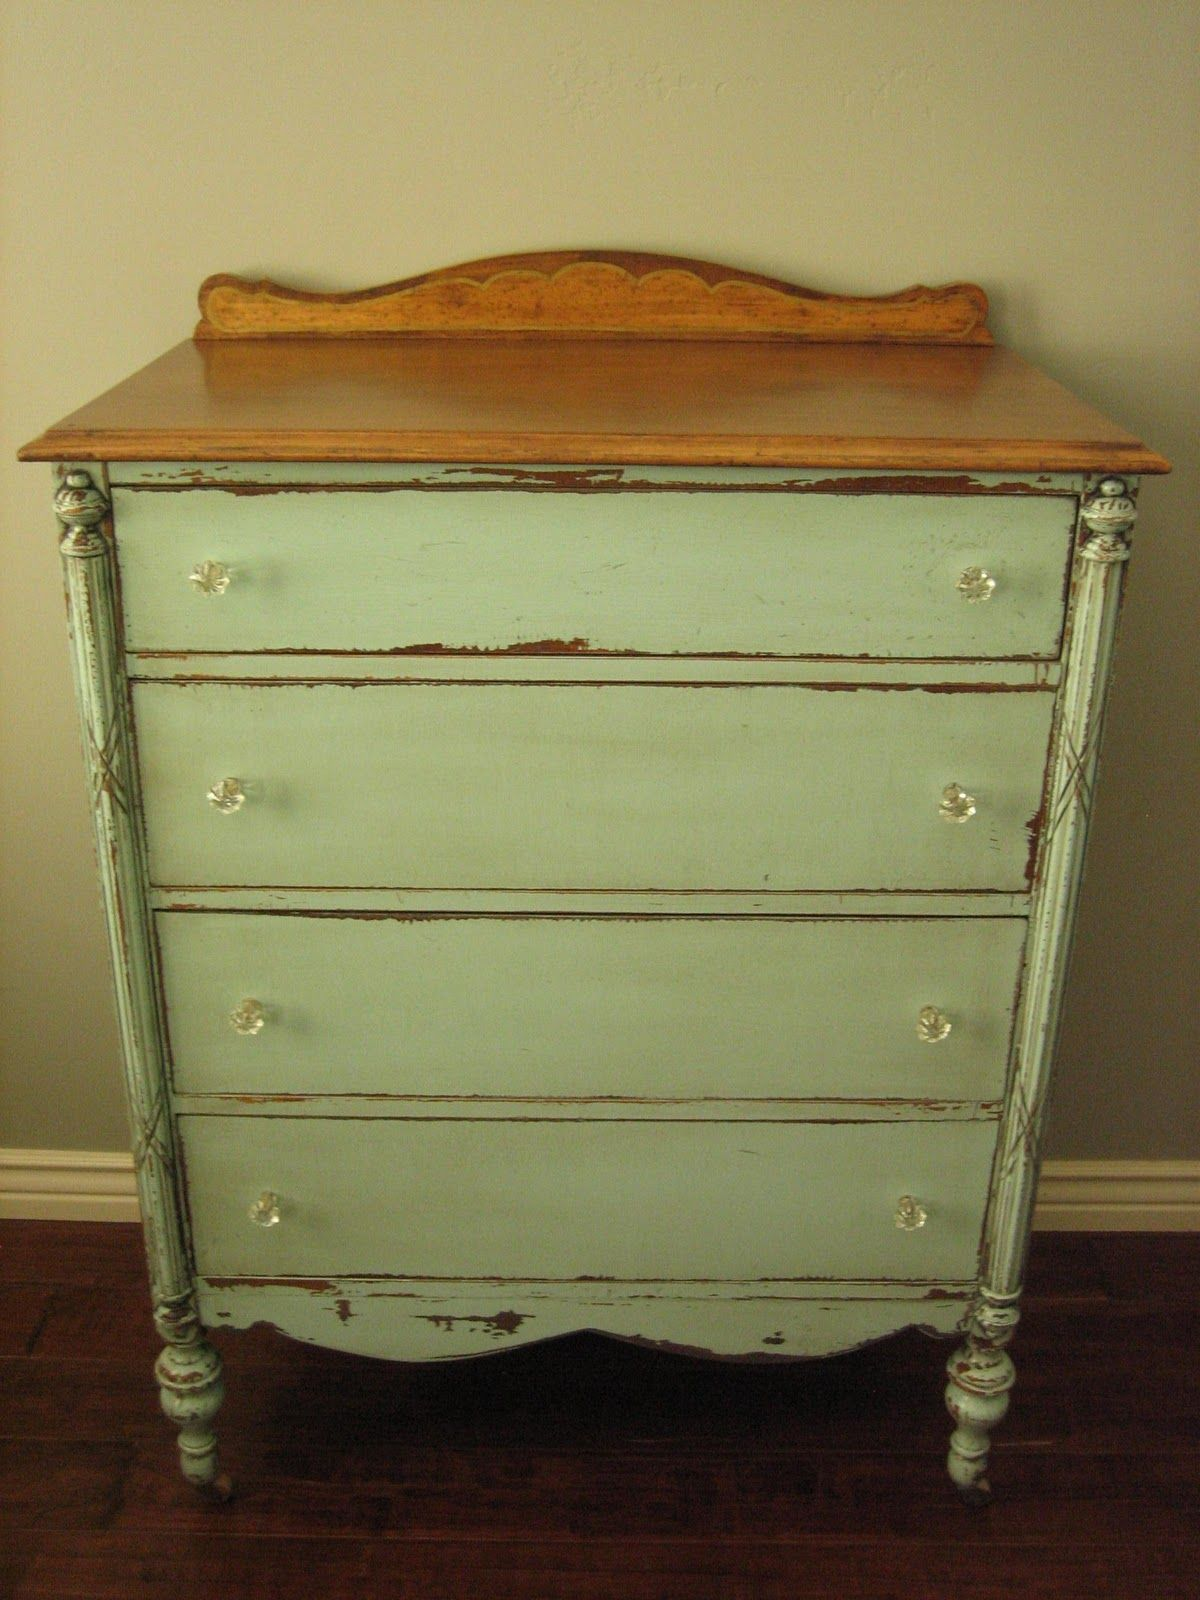 Vintage shabby chic furniture on pinterest shabby chic for Shabby chic furniture